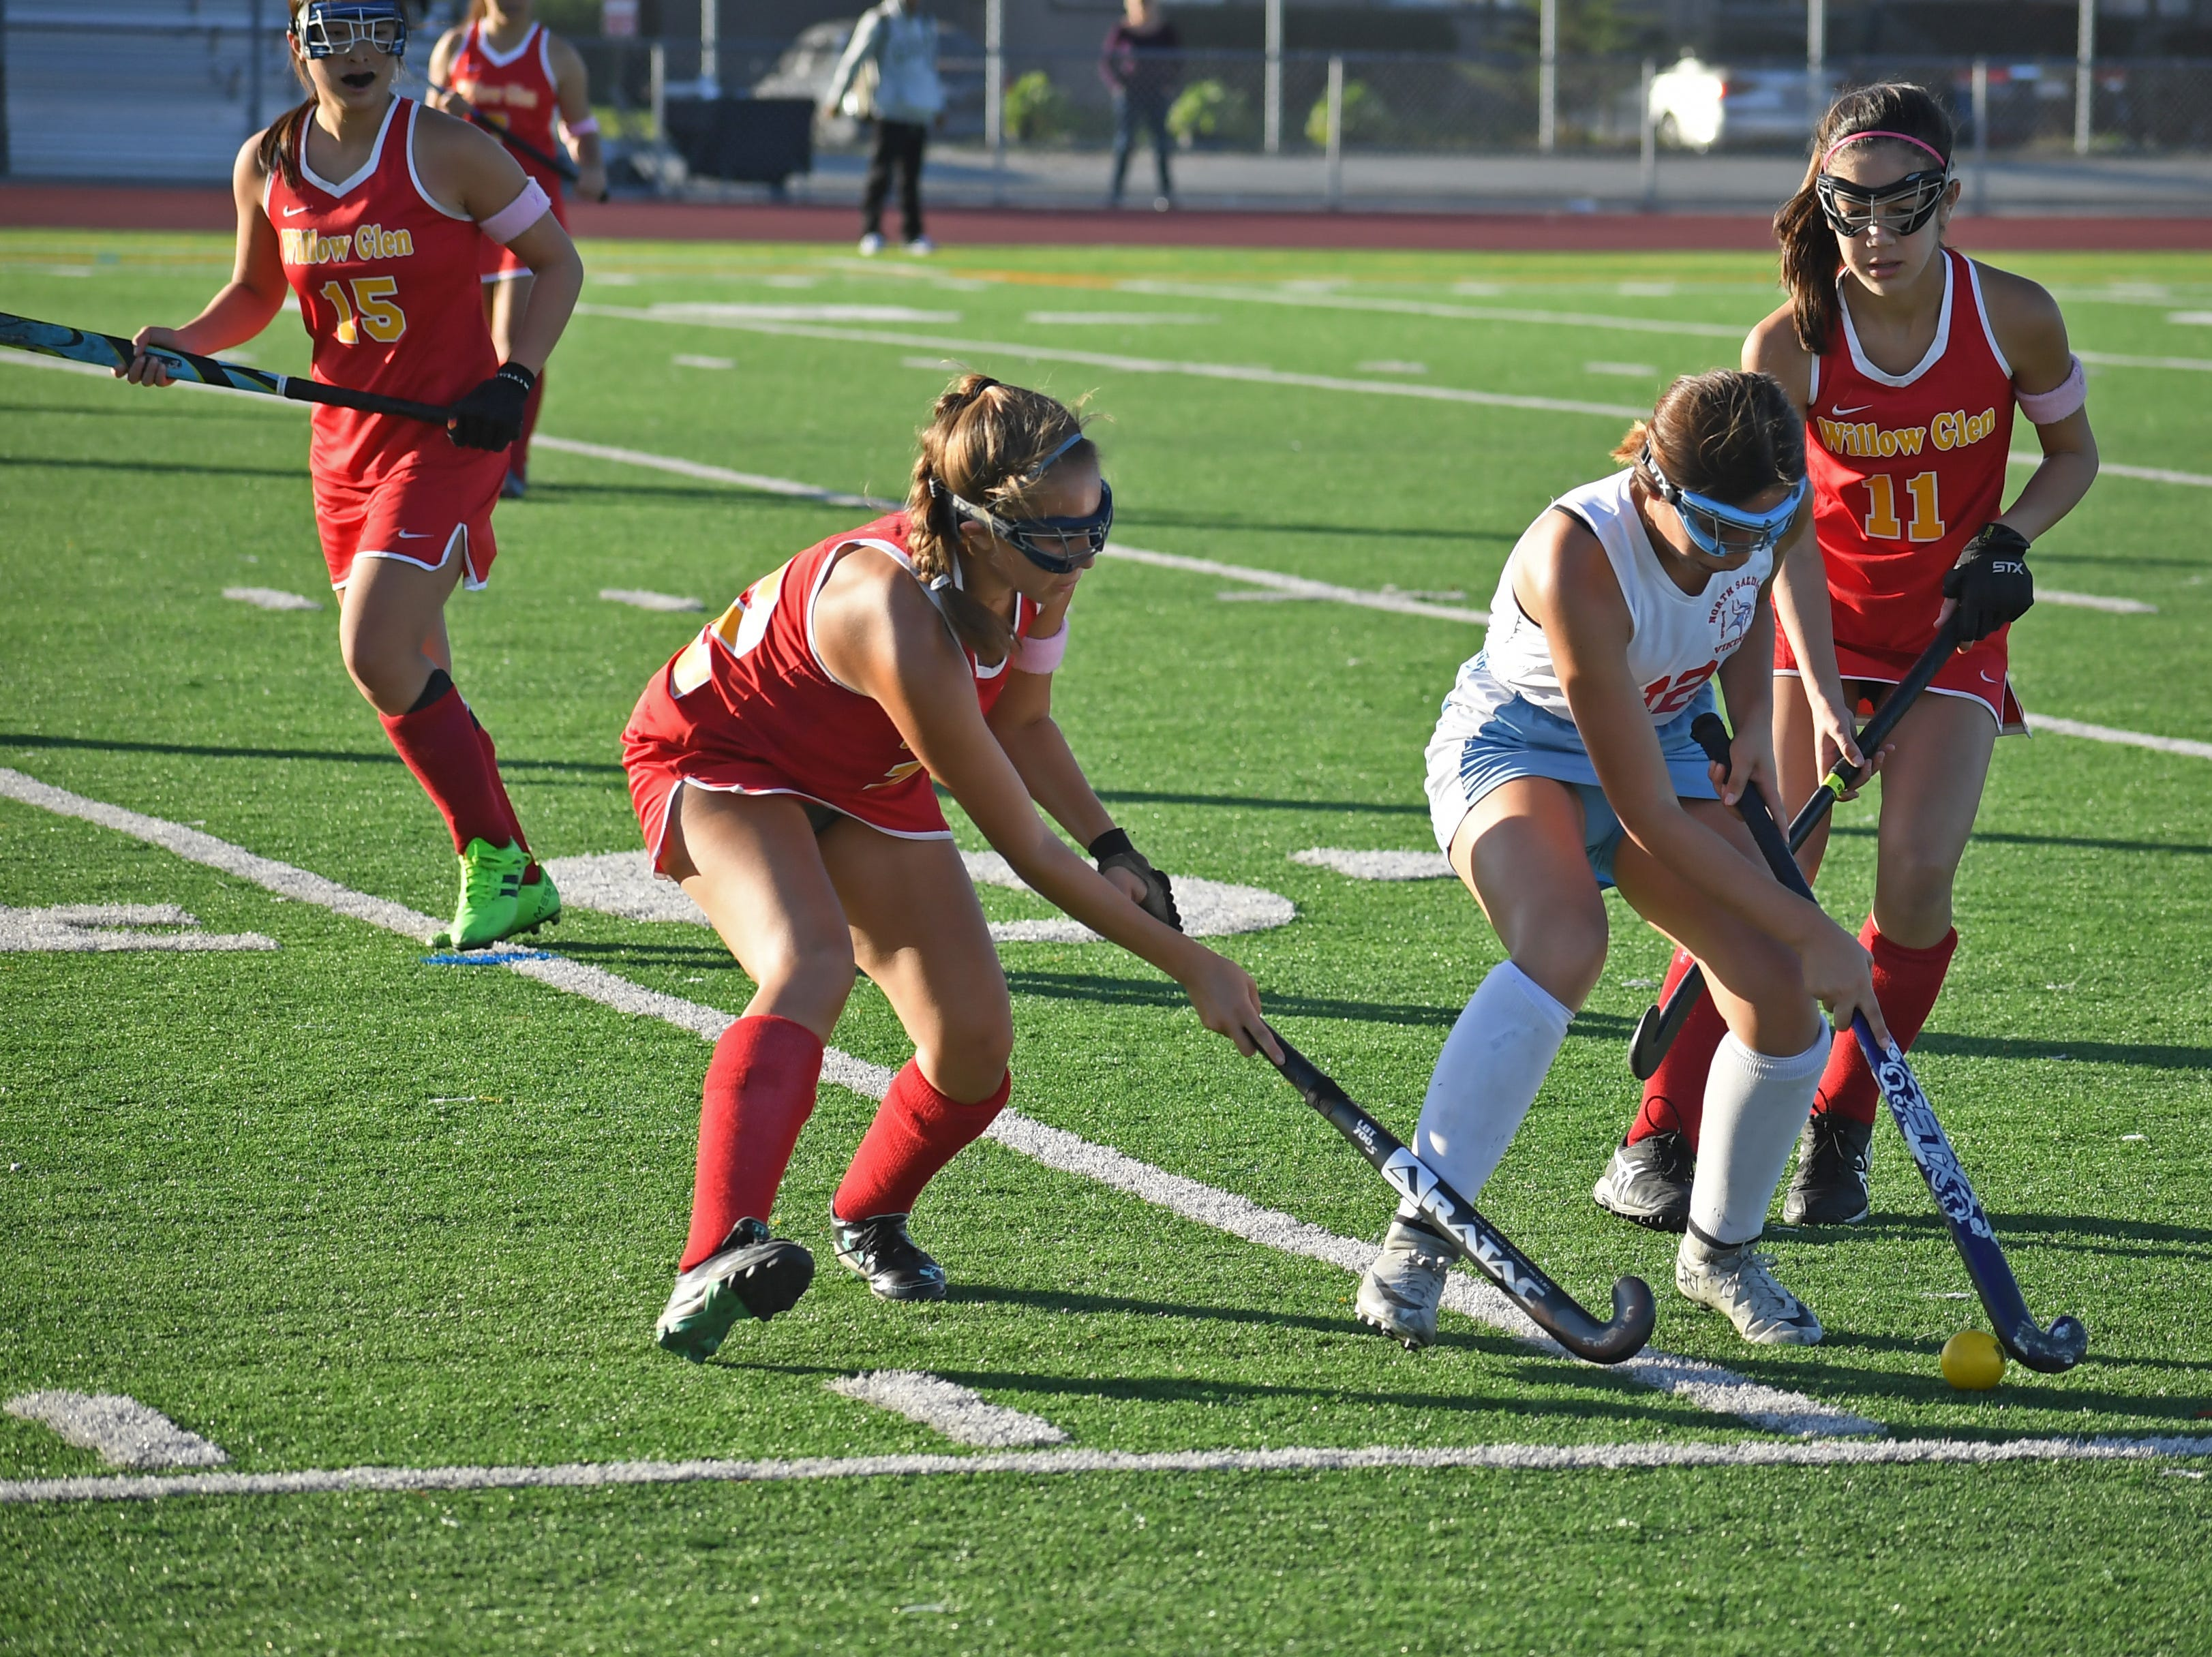 Midfiedler Yesenia Solis (12) protects the ball from two Willow Glen forwards.